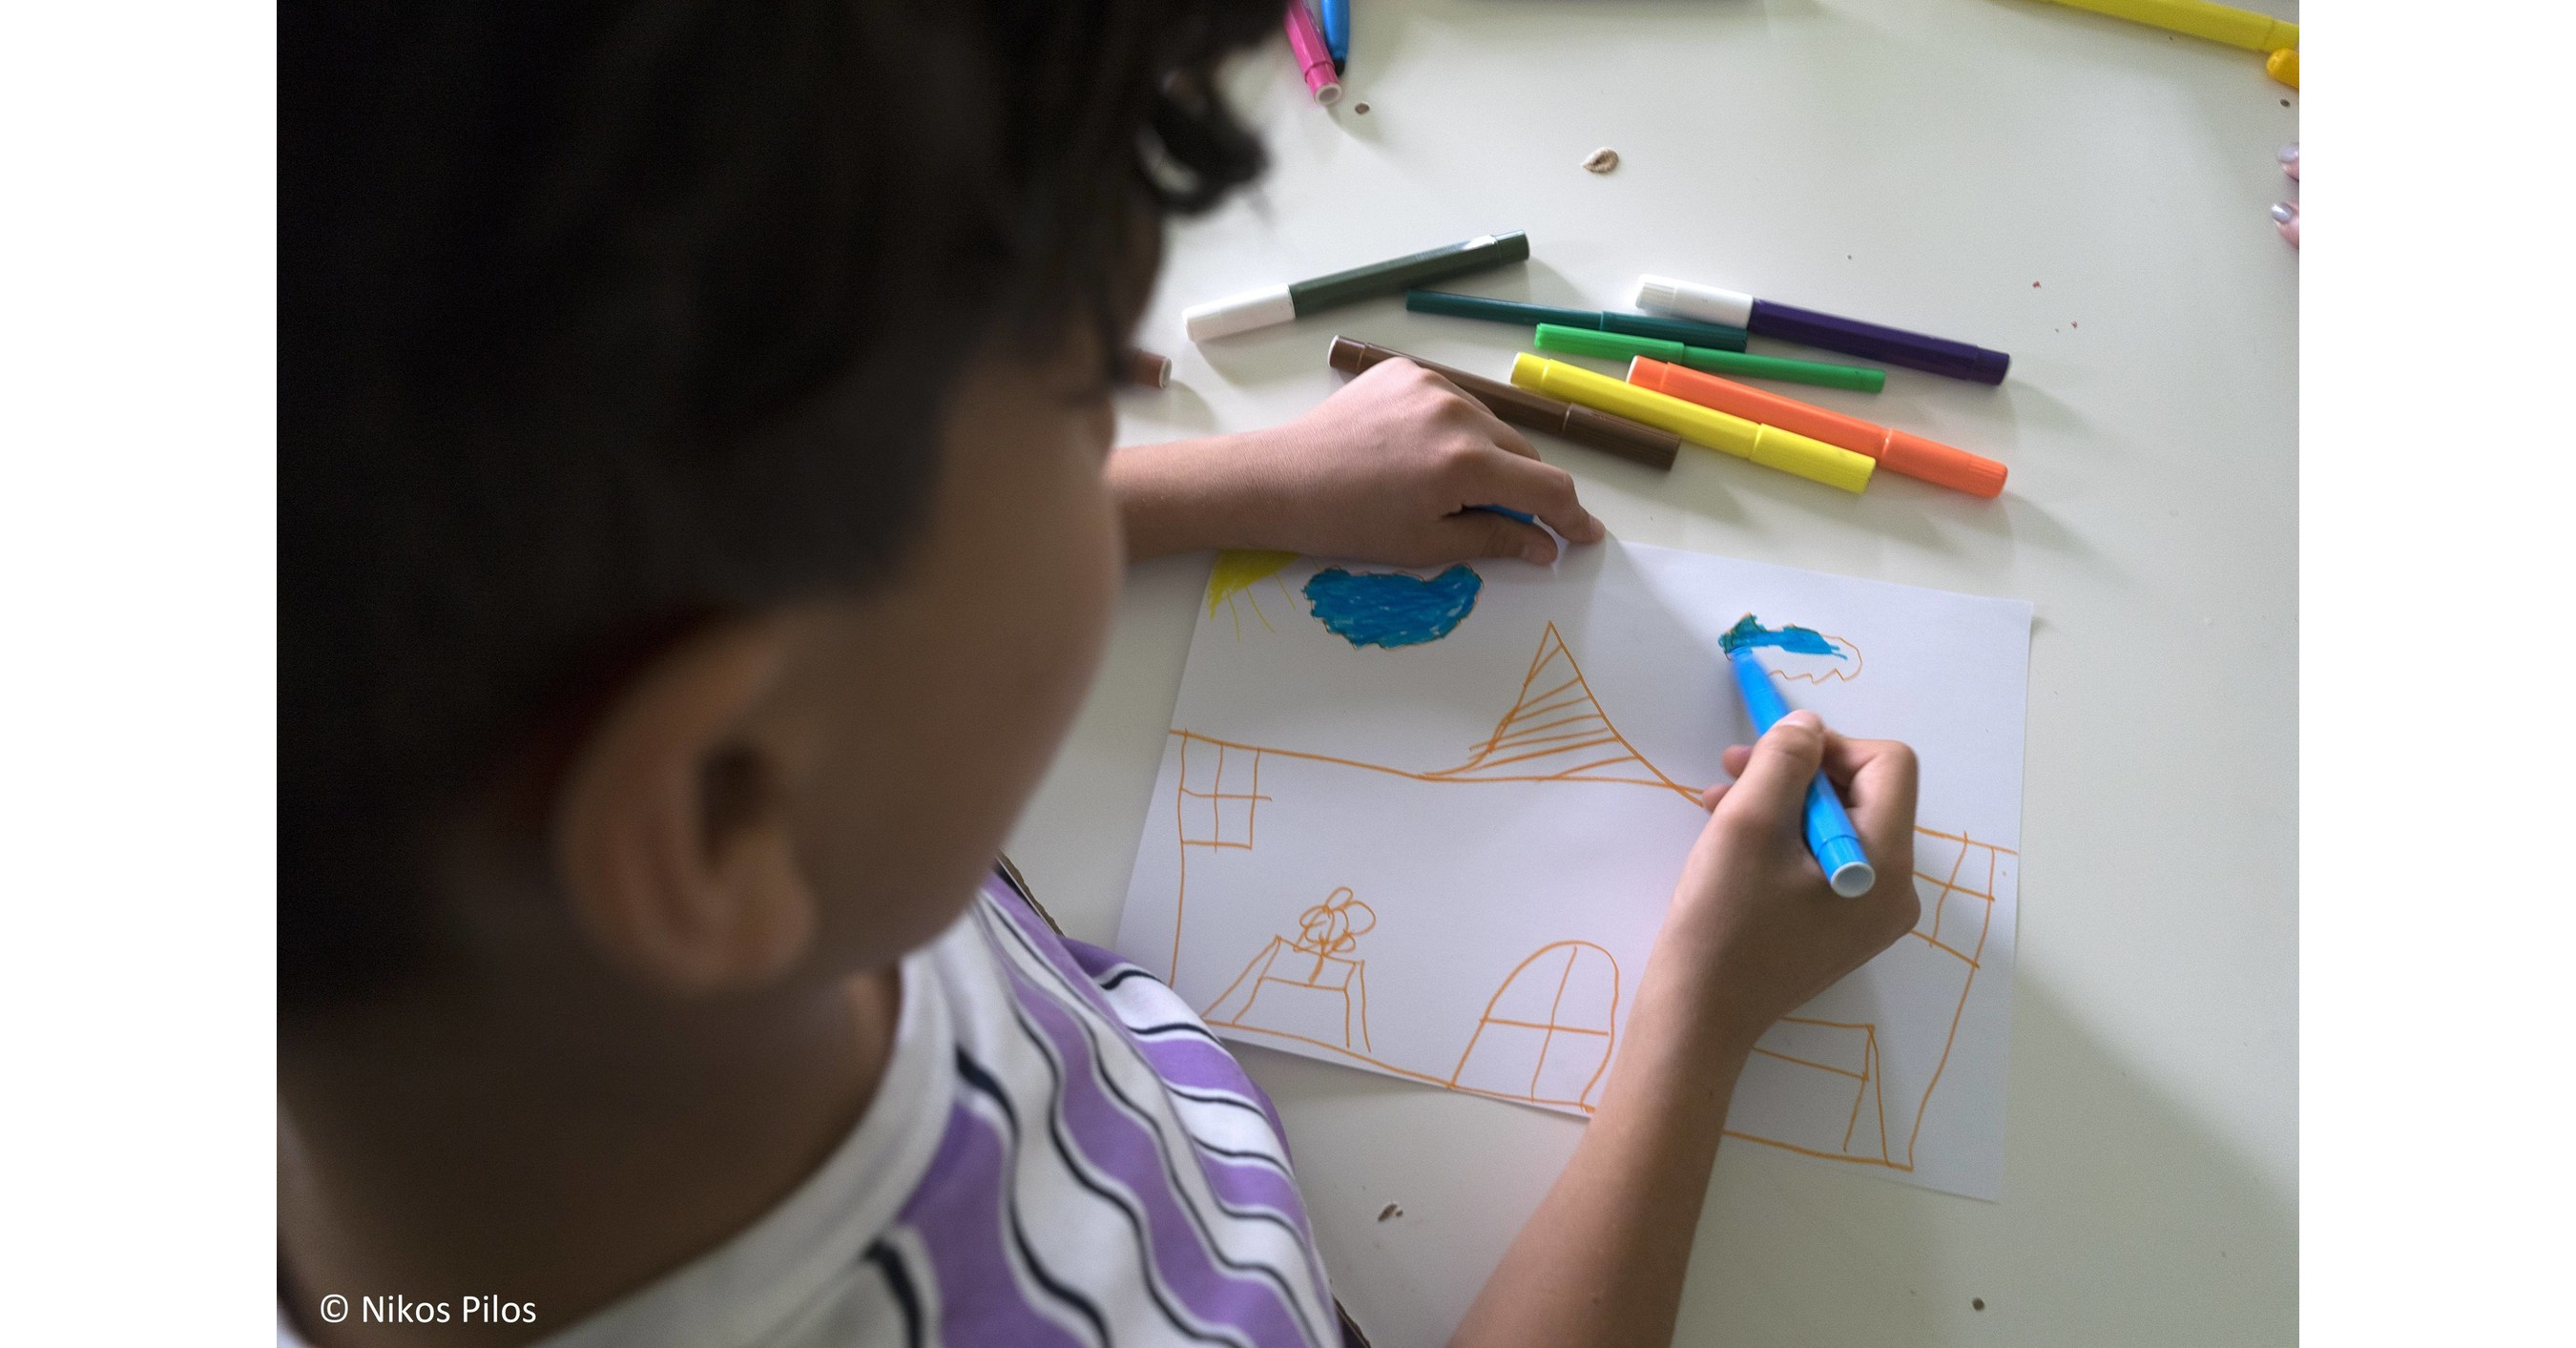 The HOME Project Announces €4 Million Grant from the IKEA Foundation